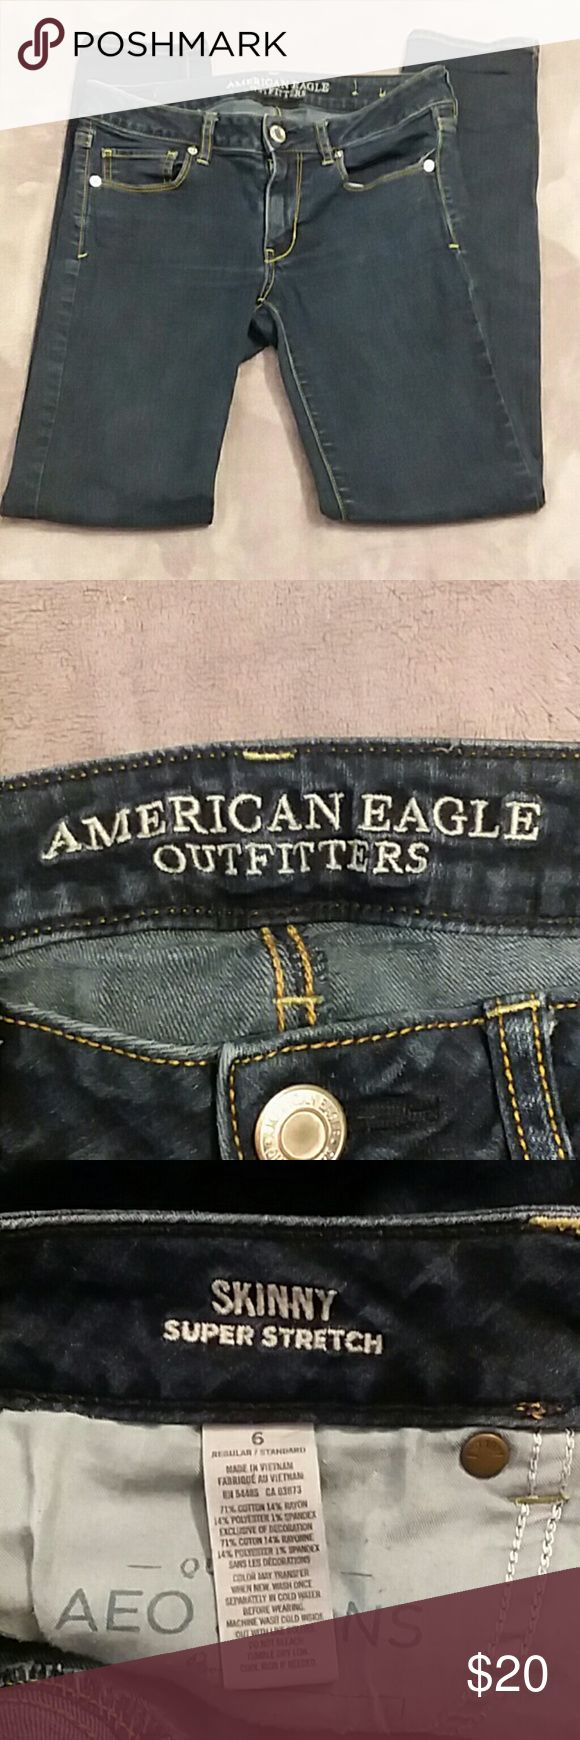 AEO women's size 6 skinny super stretch jeans American Eagle women's size 6 dark wash skinny super stretch jeans. Great condition no signs of wear American Eagle Outfitters Jeans Skinny